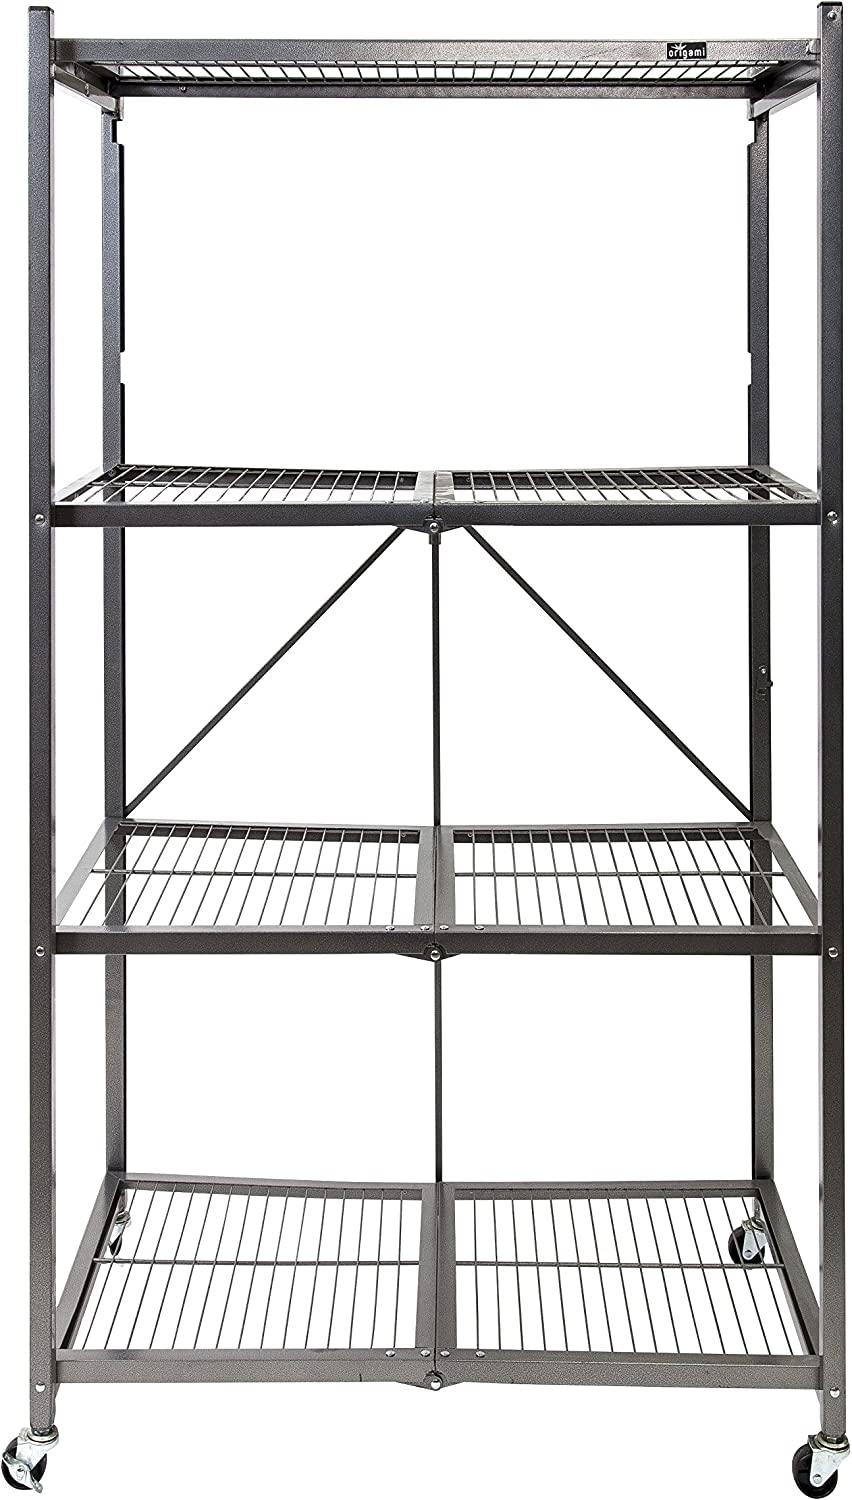 Origami R5S Heavy Duty Square Rack - $94.99 (reg. $150) | 1500x854